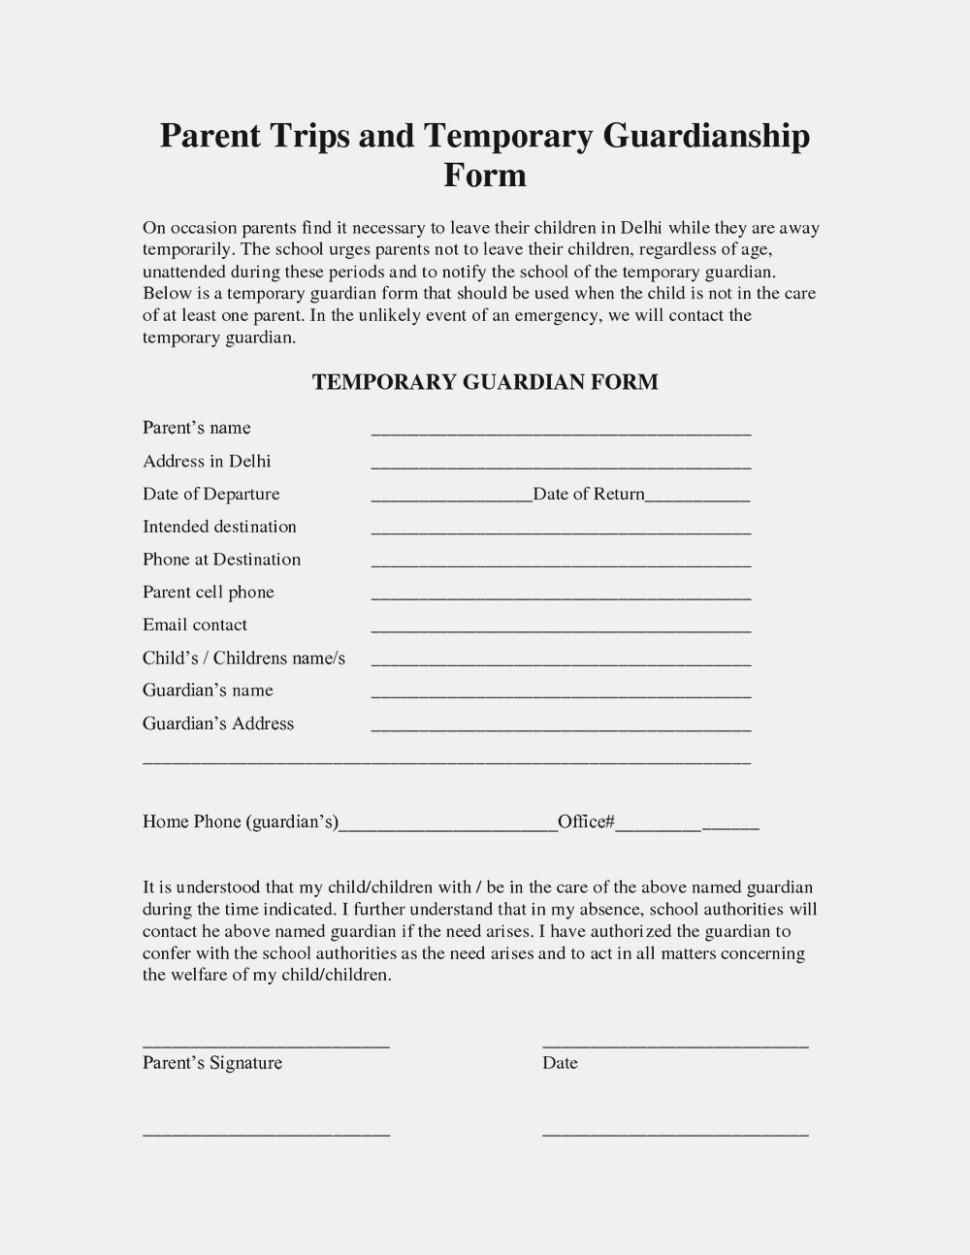 What's So Trendy About Free | The Invoice And Resume Template - Free Printable Child Custody Forms